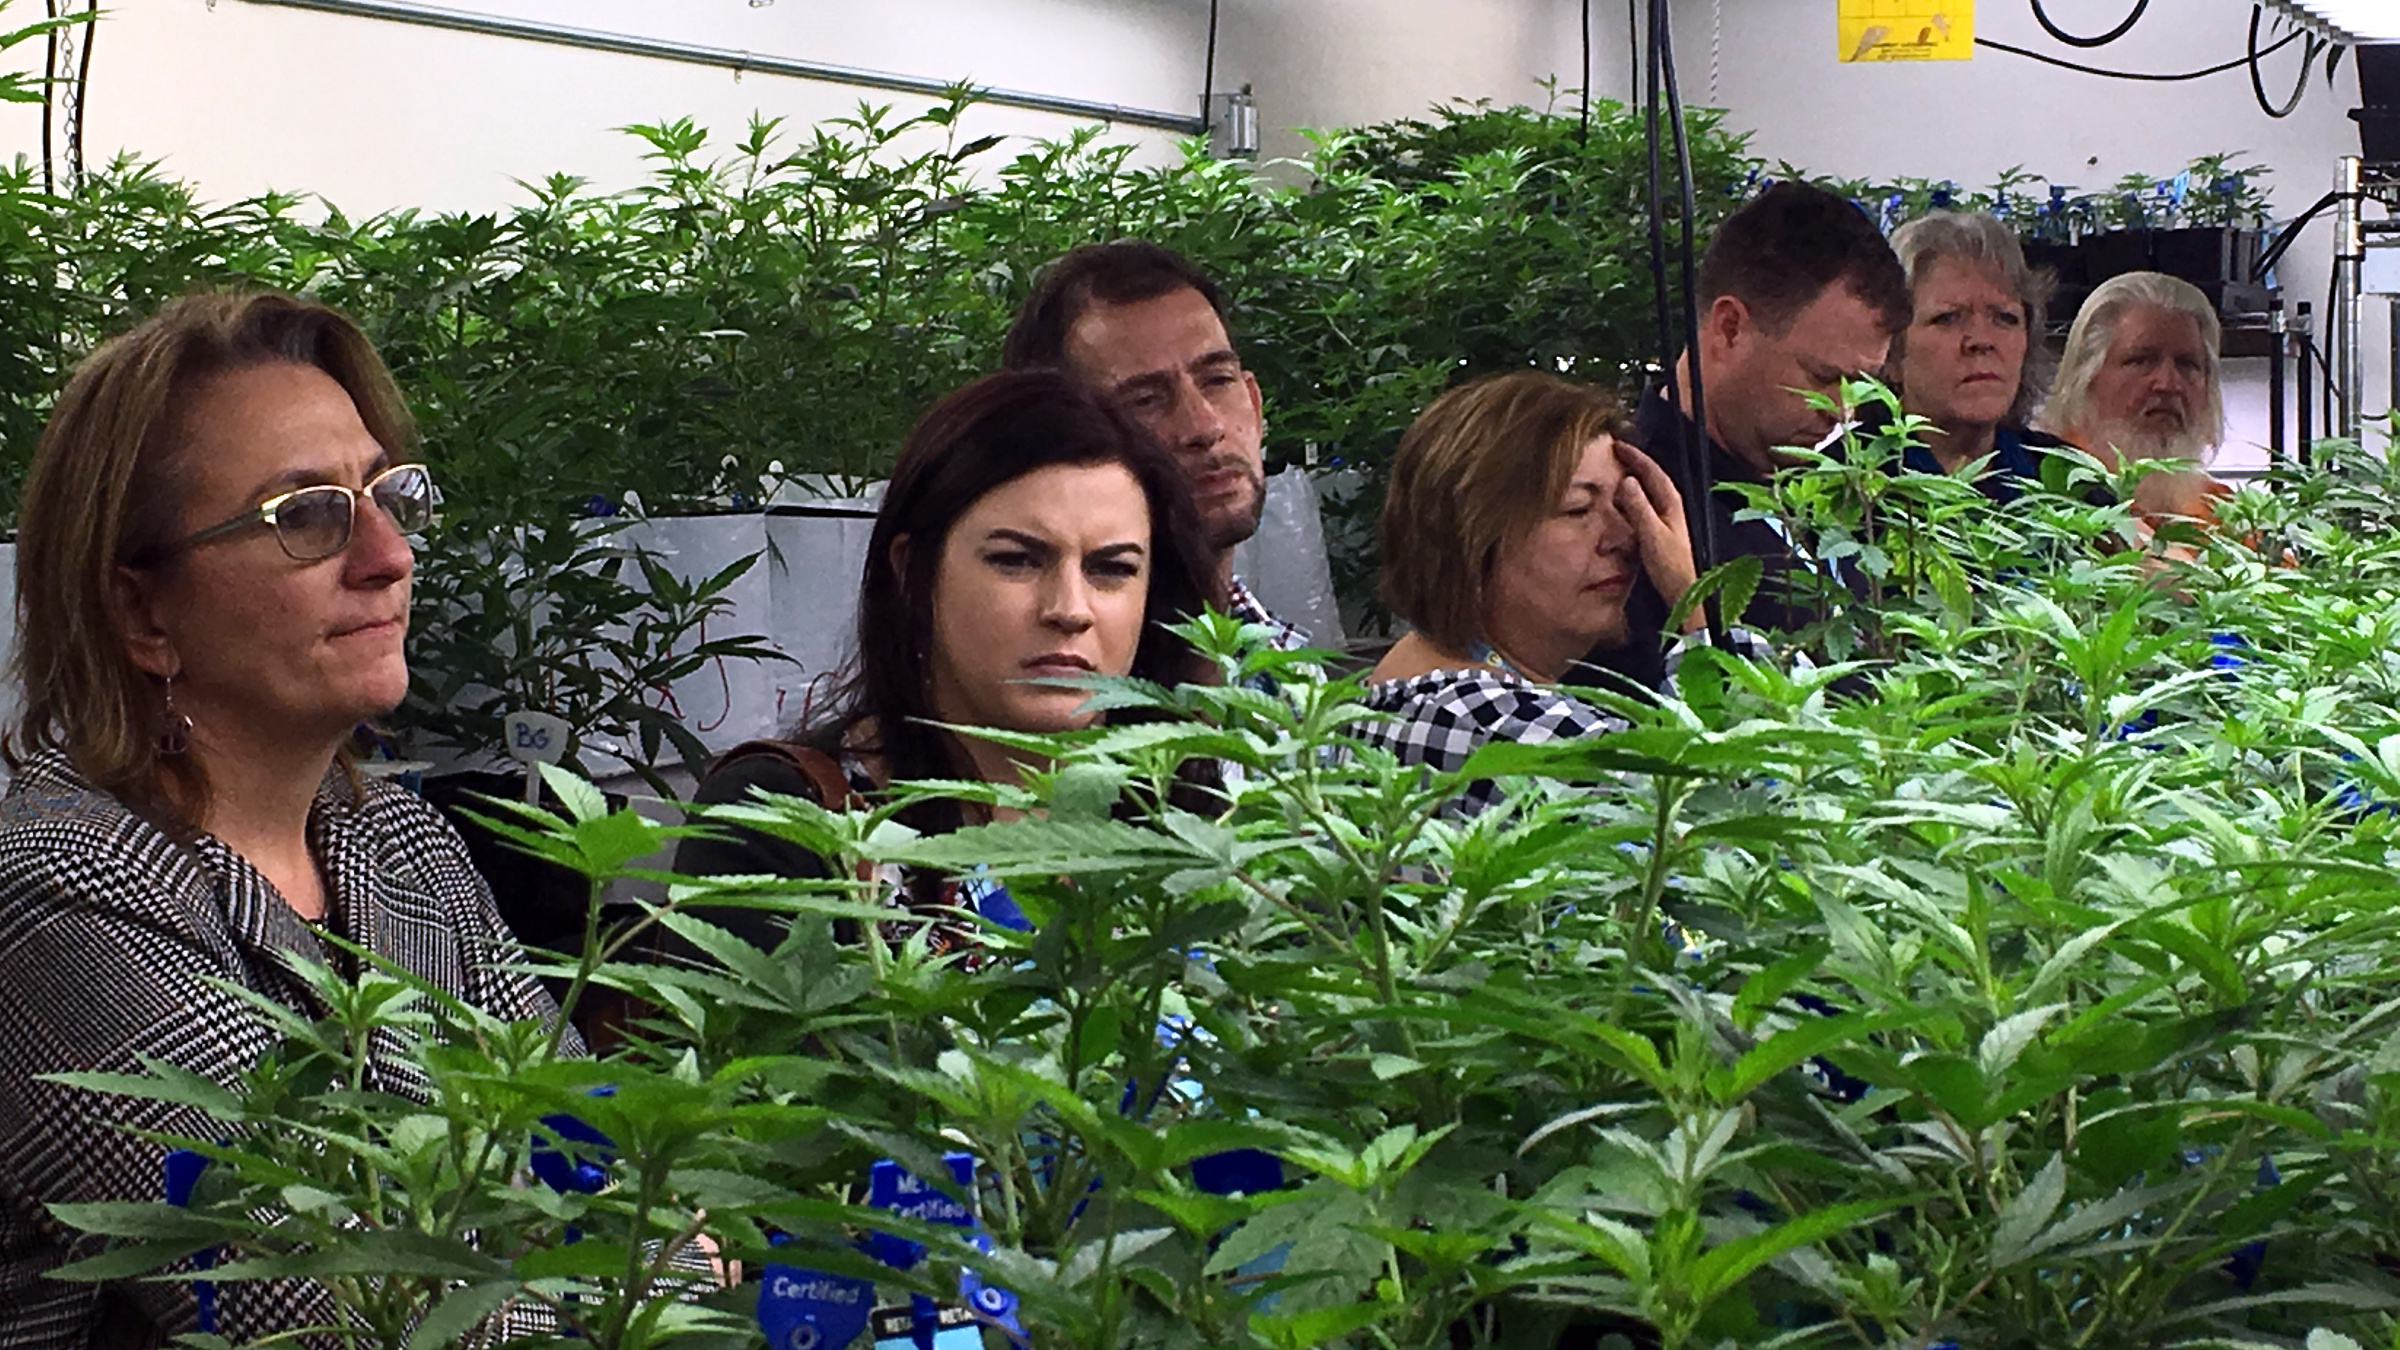 In this Jan. 31, 2017 photo, agriculture regulators from seven different states and Guam tour a Denver marijuana growing warehouse on a tour organized by the Colorado Department of Agriculture in Denver. The department is opening up its marijuana knowledge to other states and encouraging them to plan now for the possibility of regulating farmers growing a plant that violates federal law.